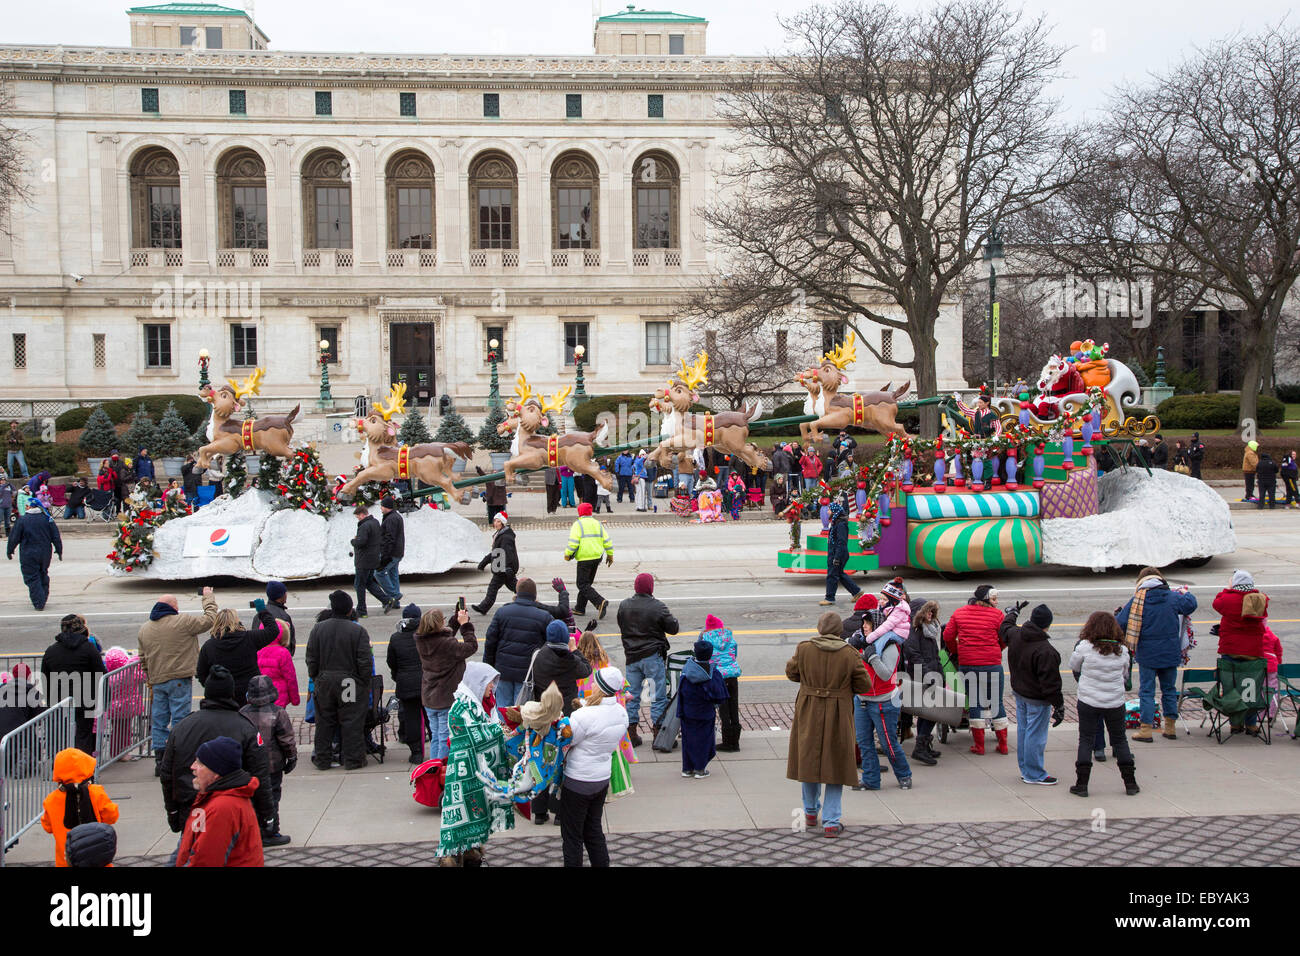 Detroits Thanksgiving Day Parade, offiziell genannt Amerikas Thanksgiving Parade. Stockbild